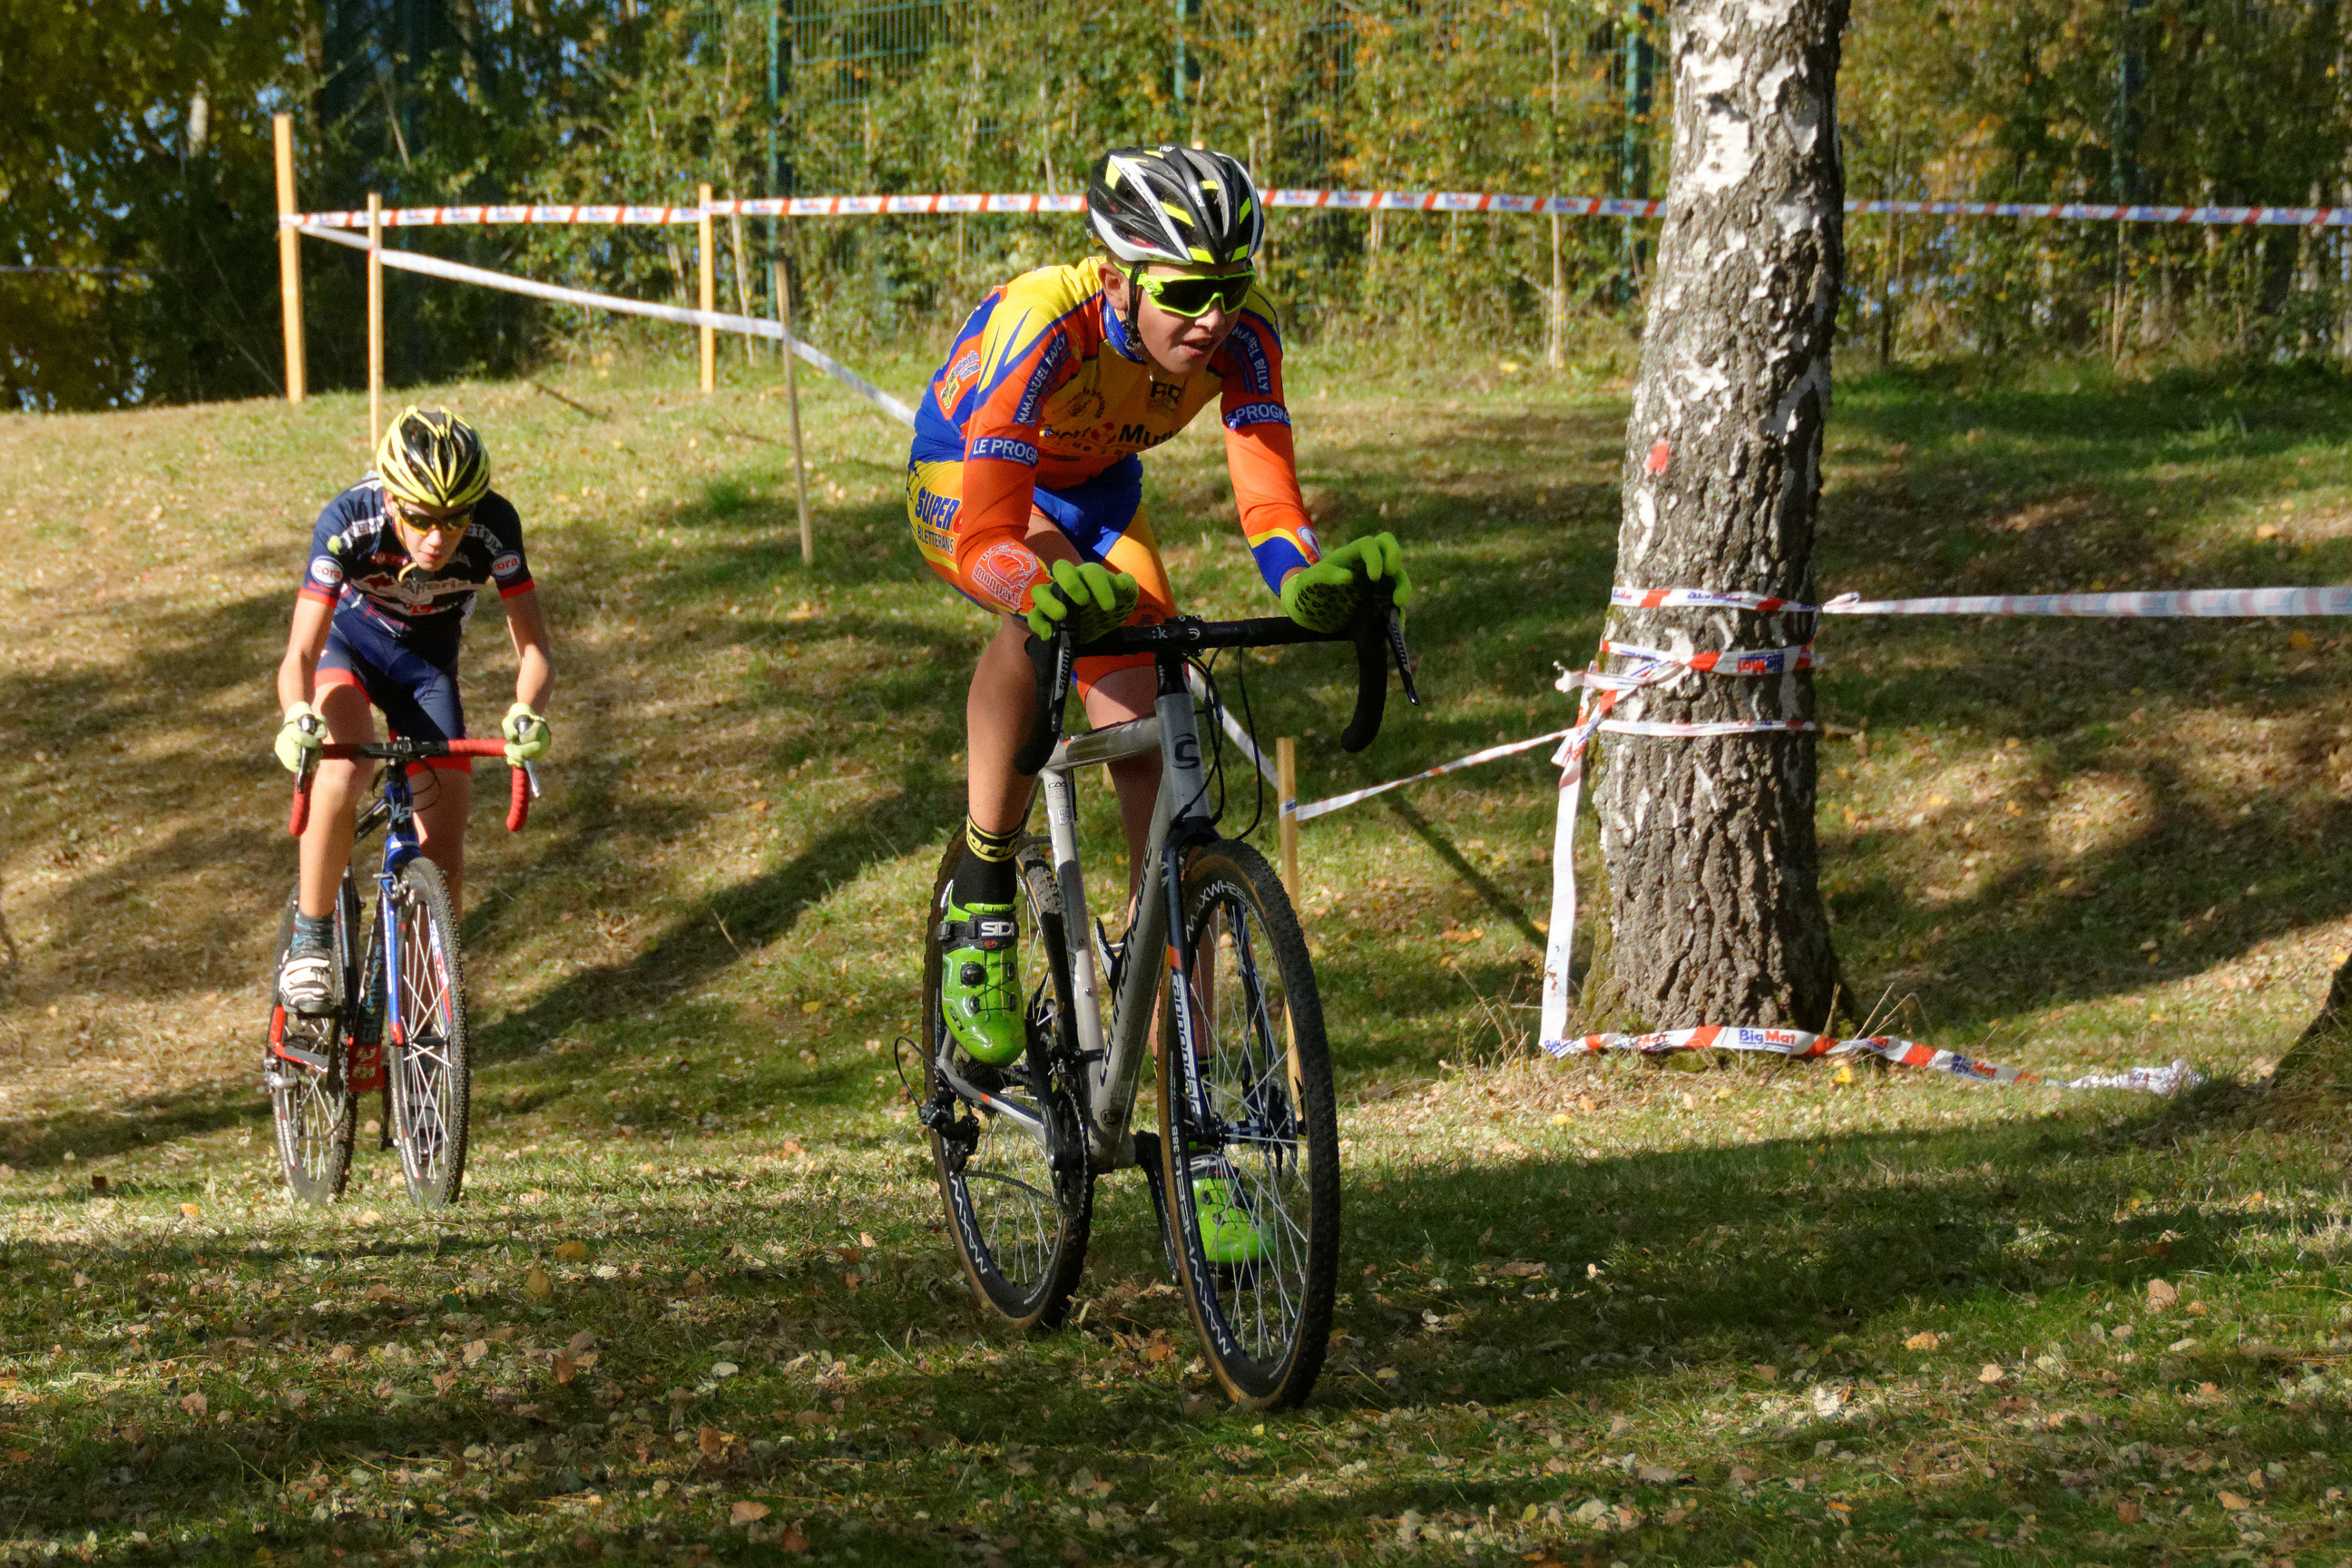 Horsham gears up for 1st Cyclocross Race